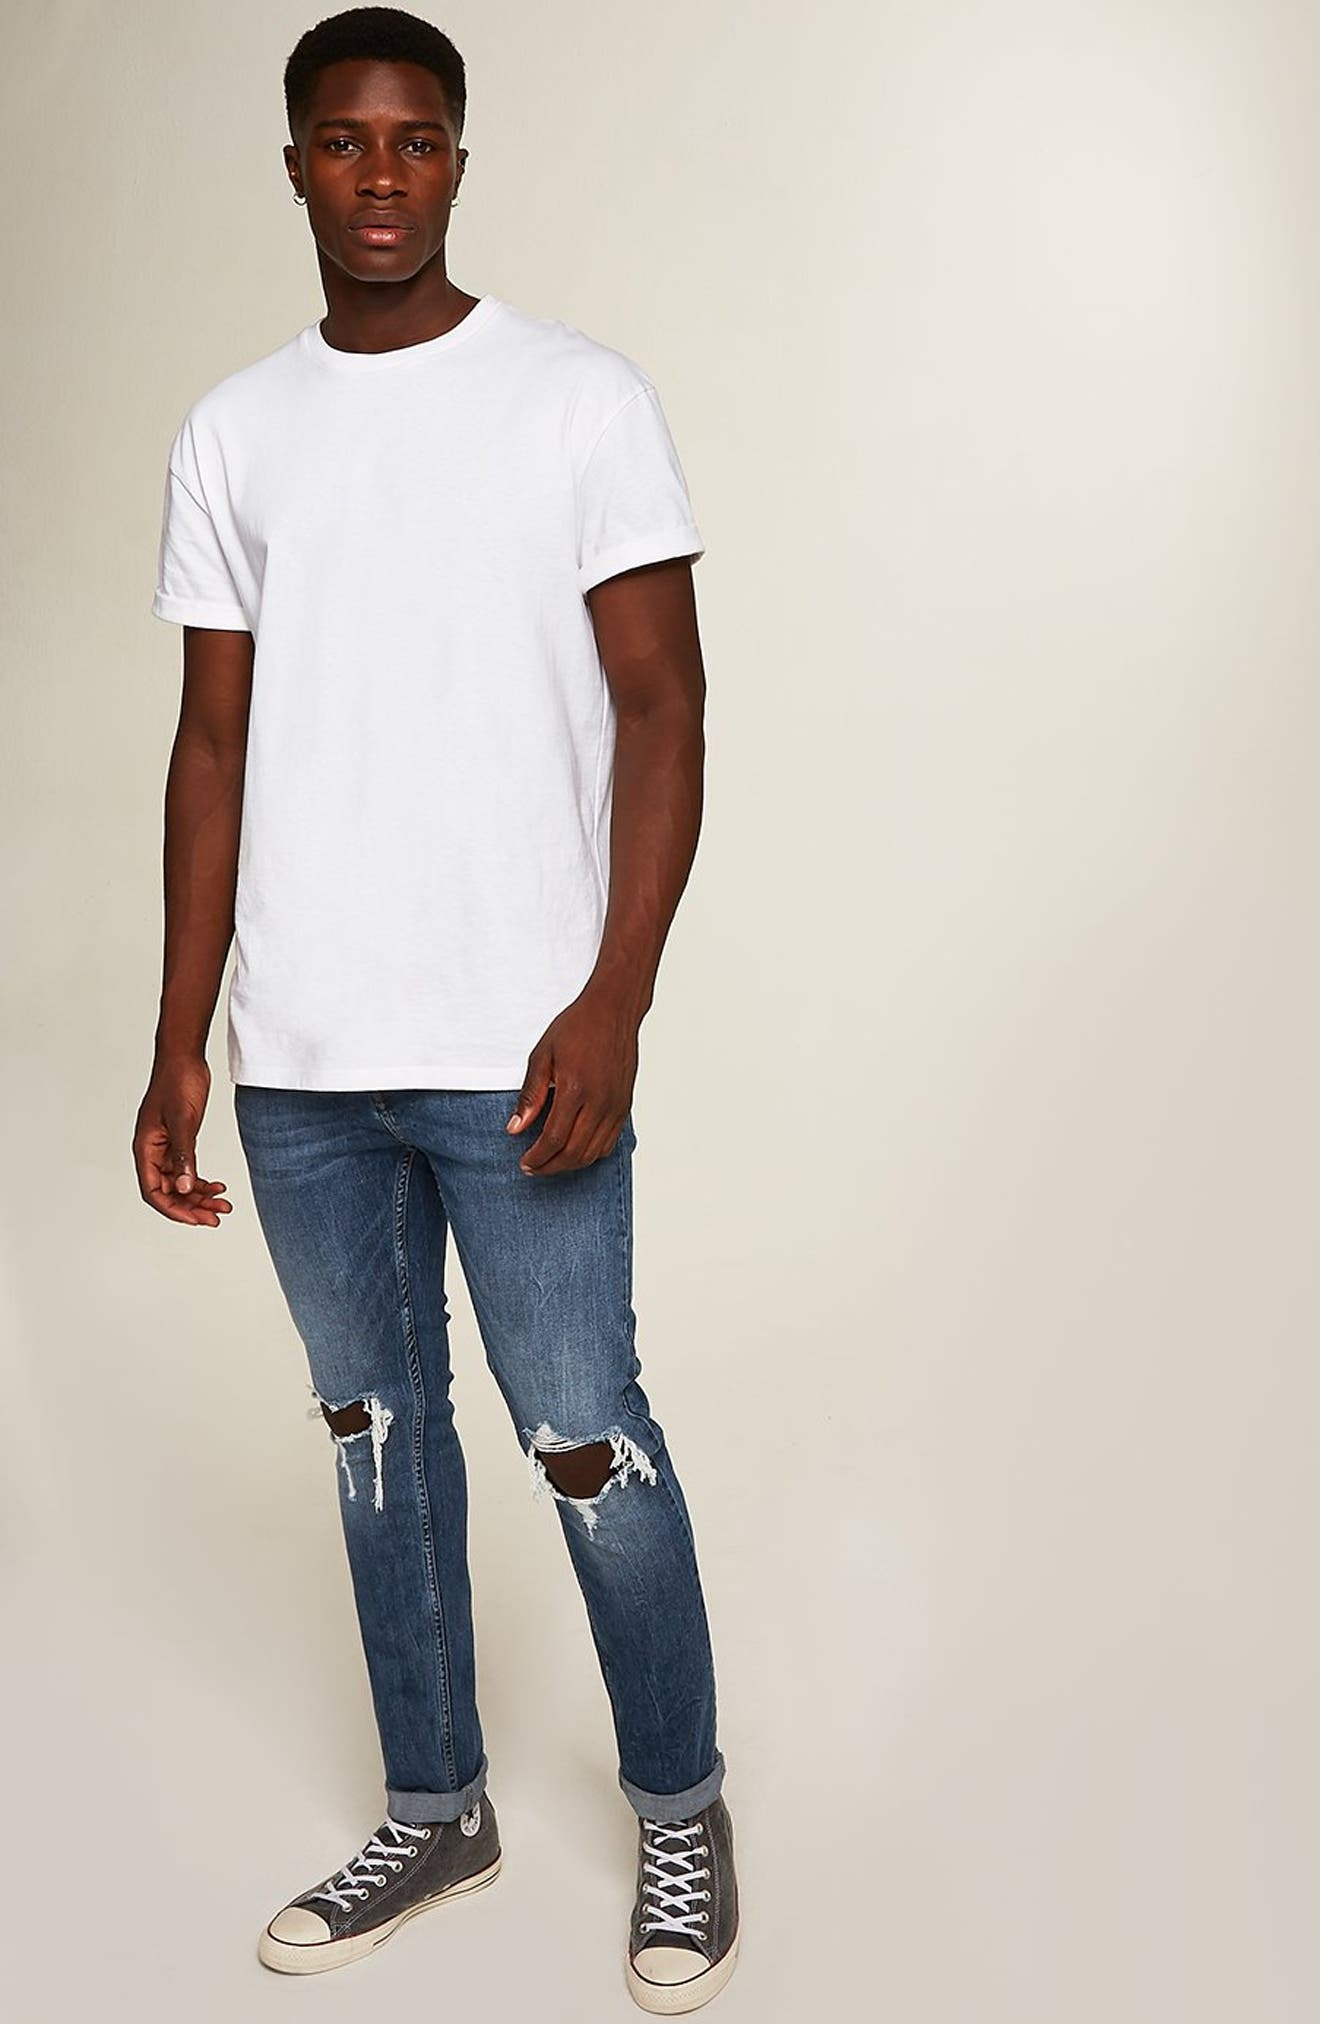 TOPMAN, Polly Ripped Stretch Skinny Jeans, Alternate thumbnail 6, color, BLUE